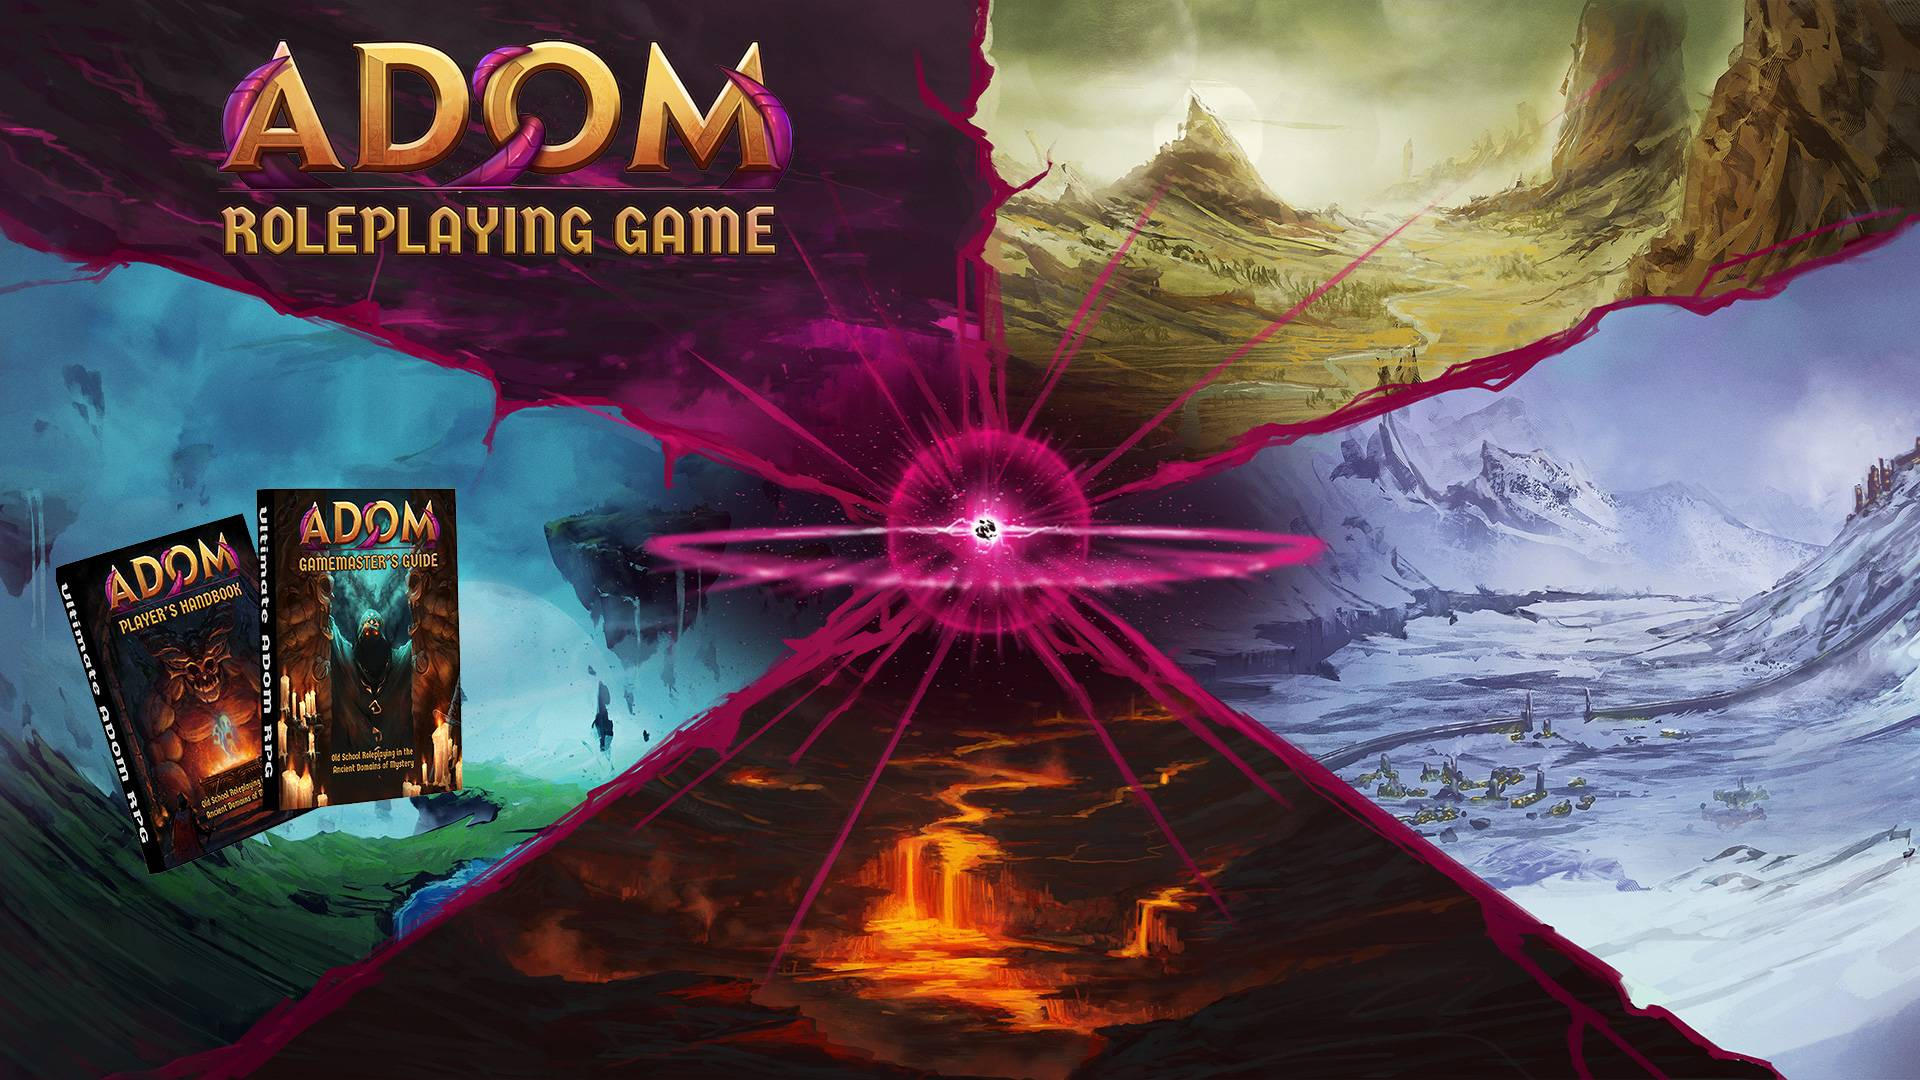 ADOM Roleplaying Game – A Modern Fantasy Roleplaying Game With An